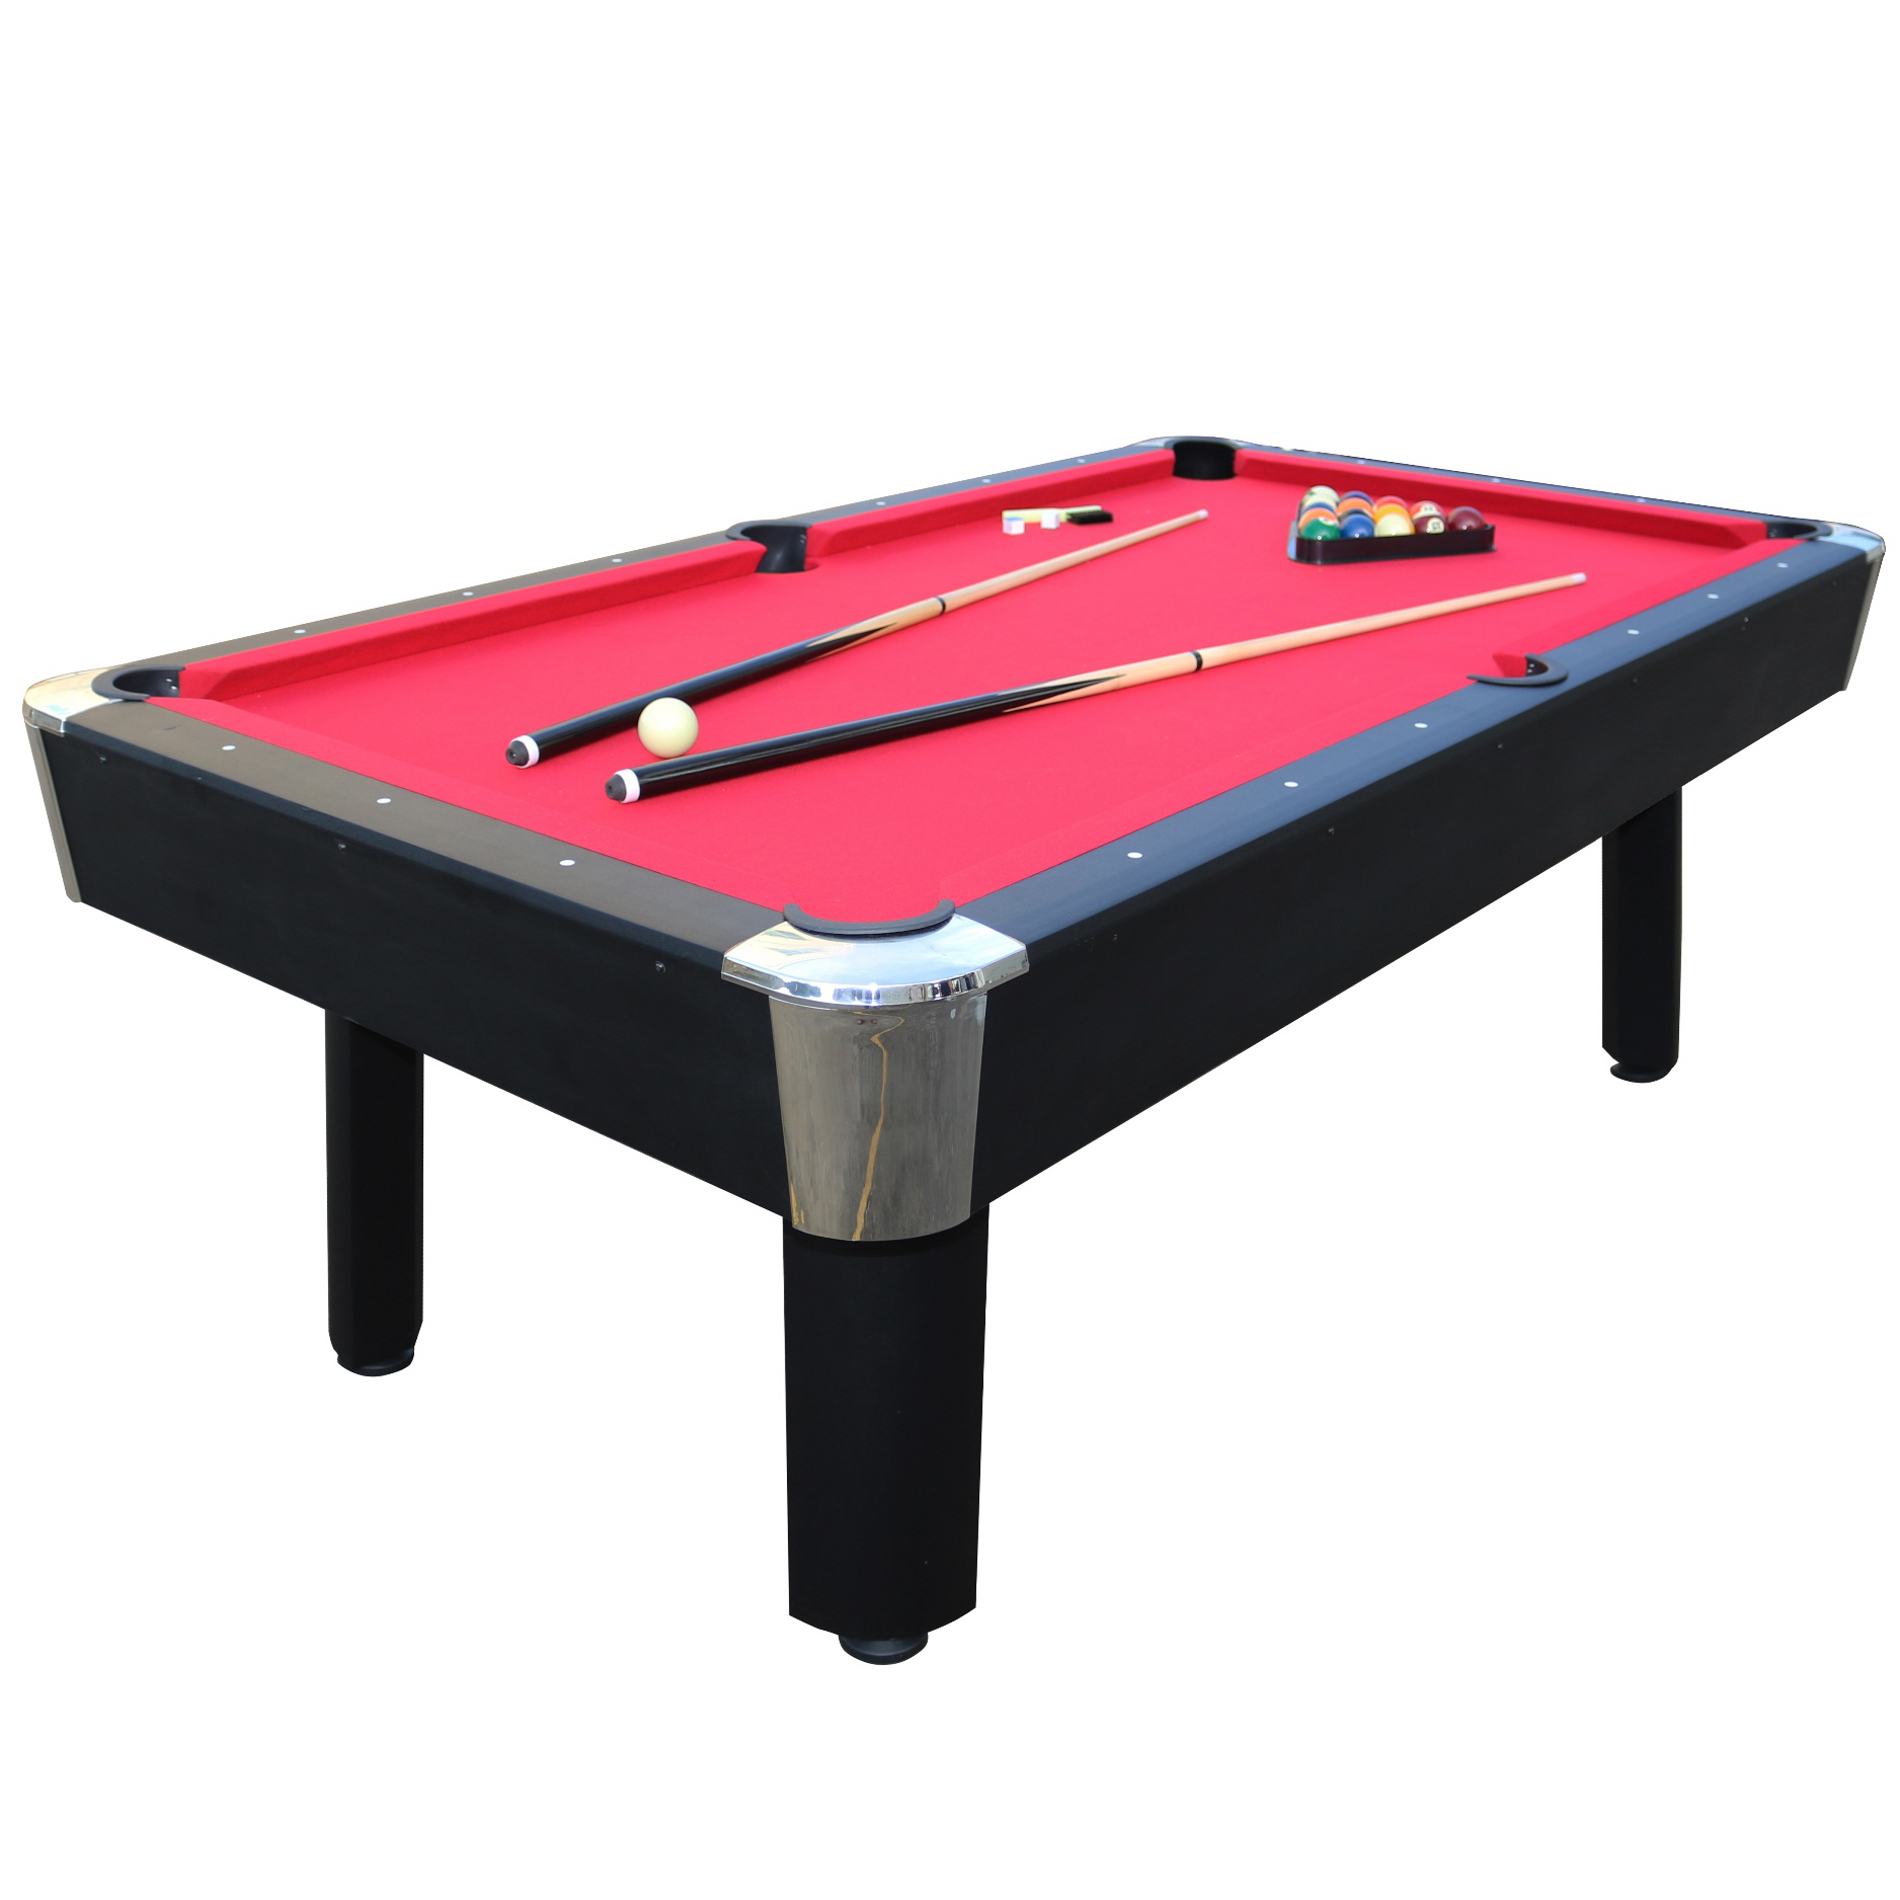 Mizerak Pool Table 7ft | 6x3 Pool Table | Mizerak Pool Table